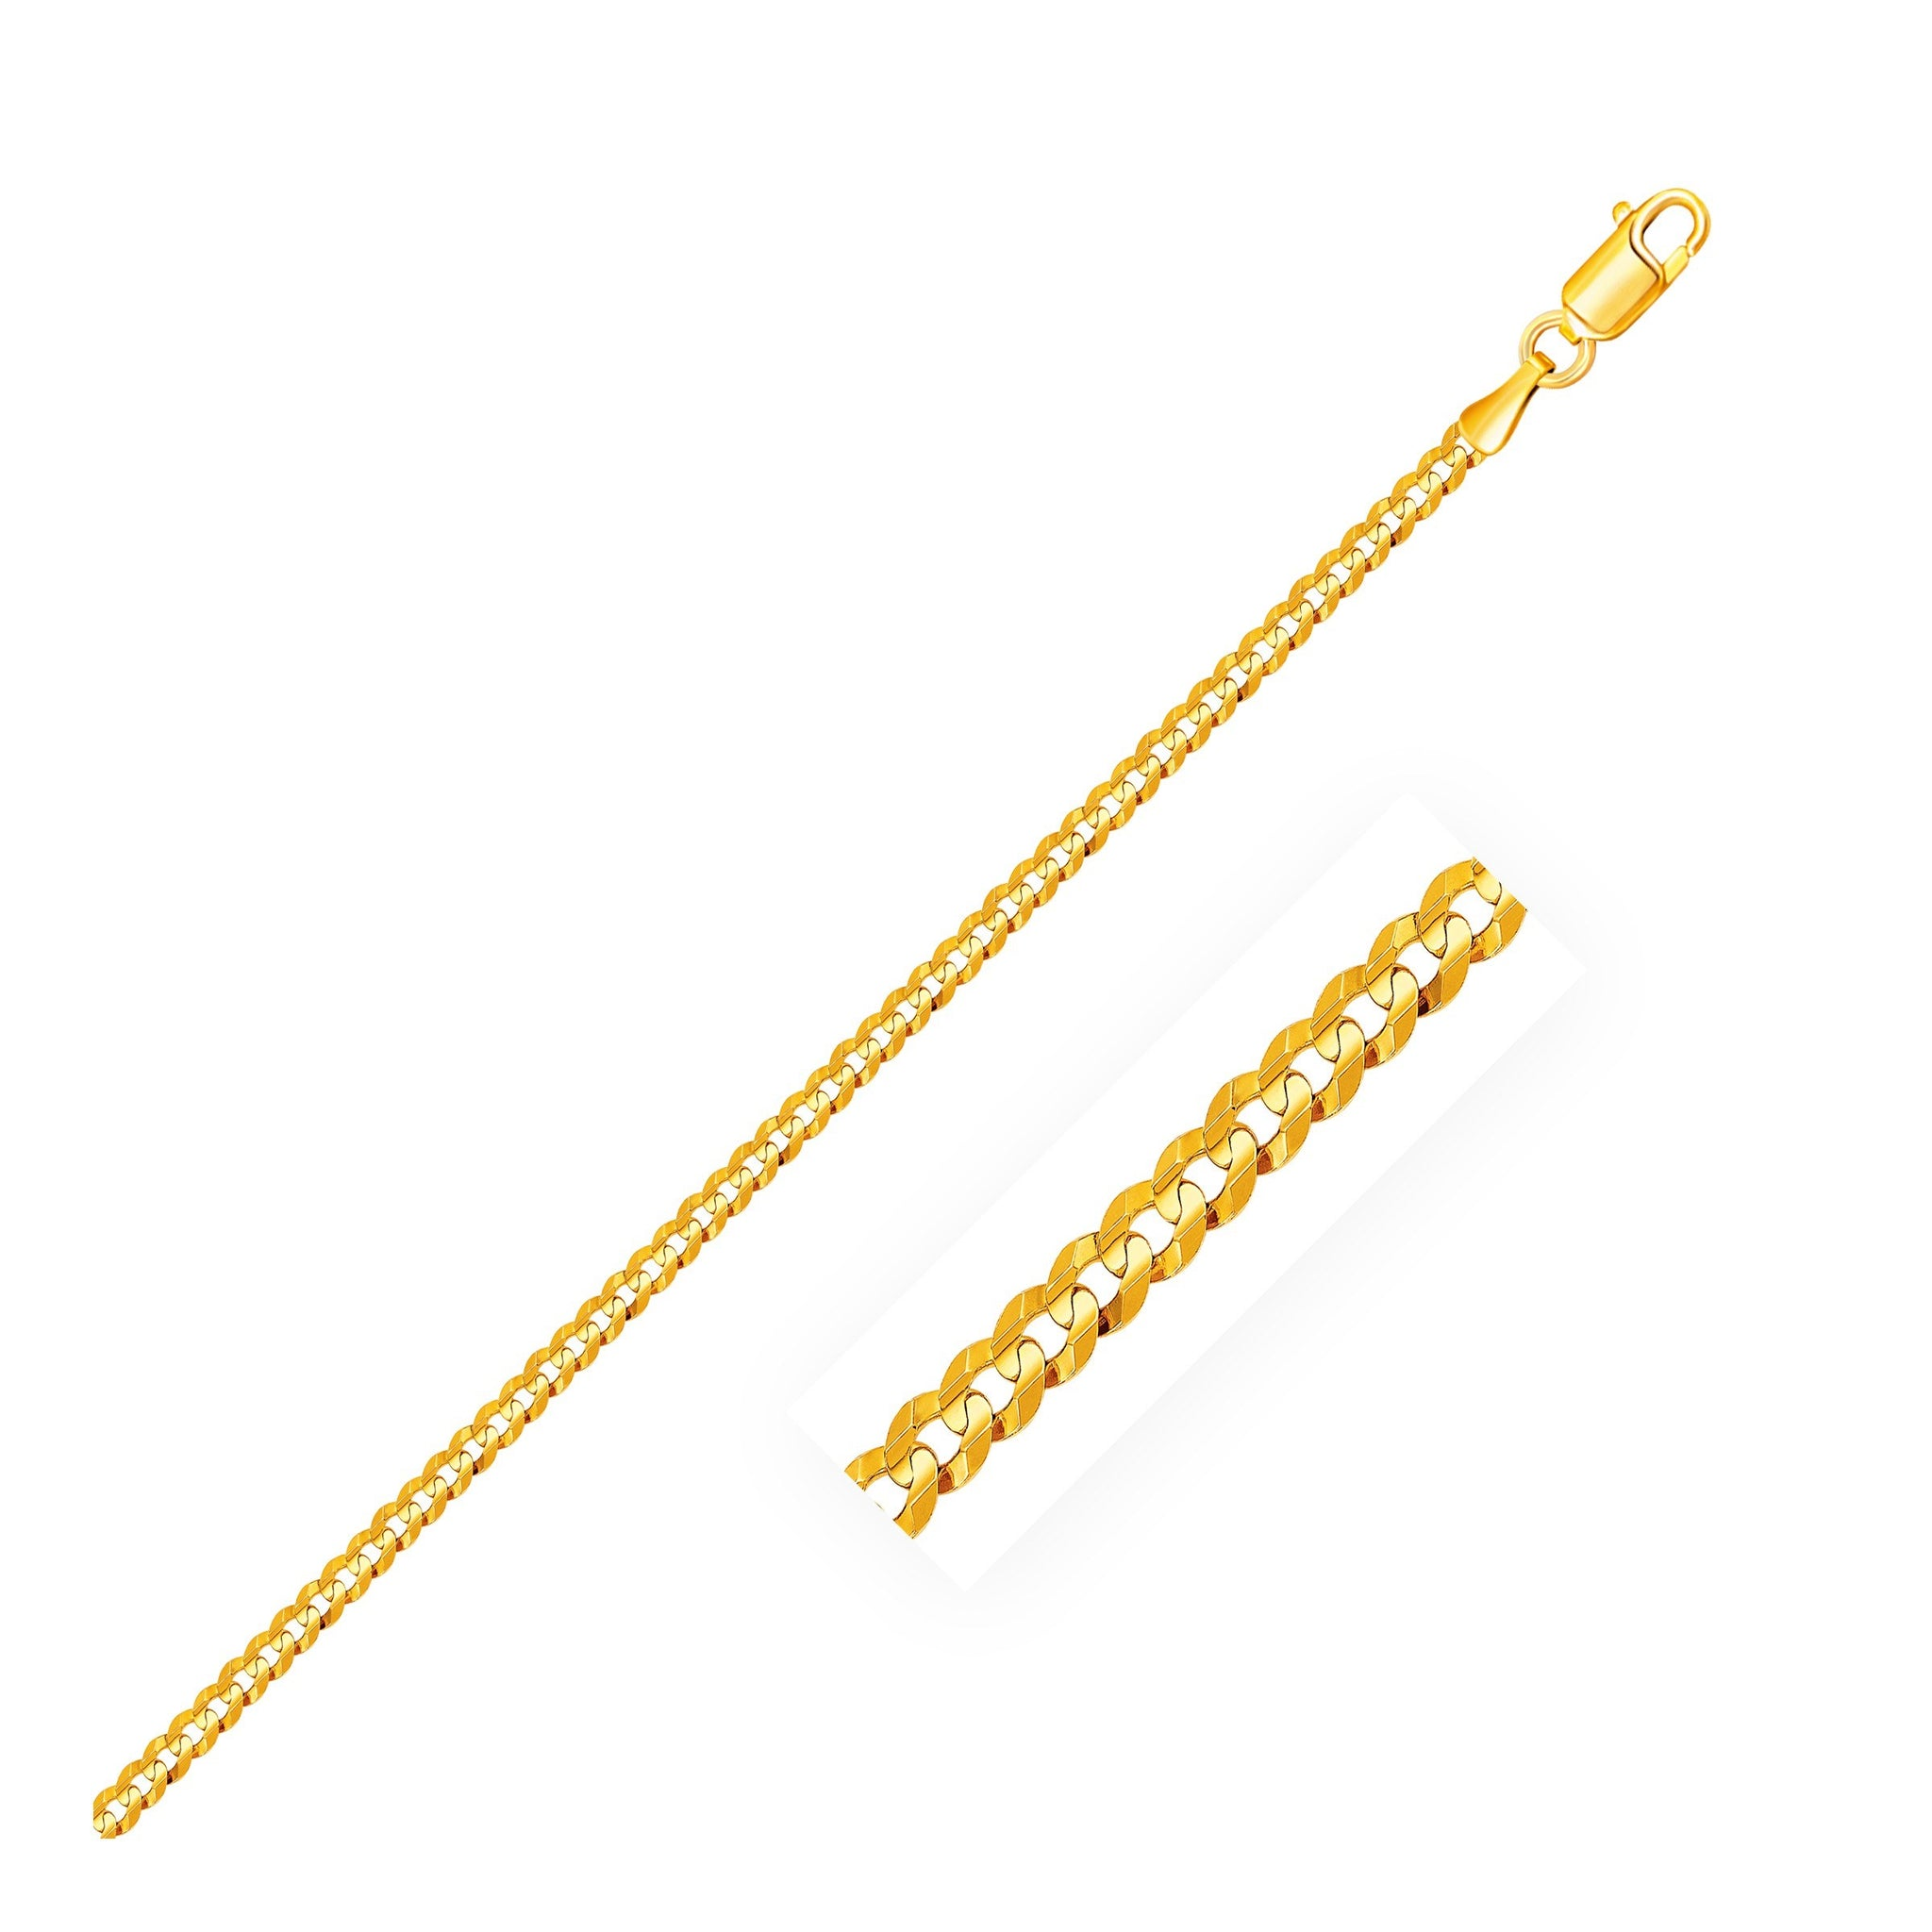 2.5mm 14K Yellow Gold Curb Link Anklet - Uniquepedia.com